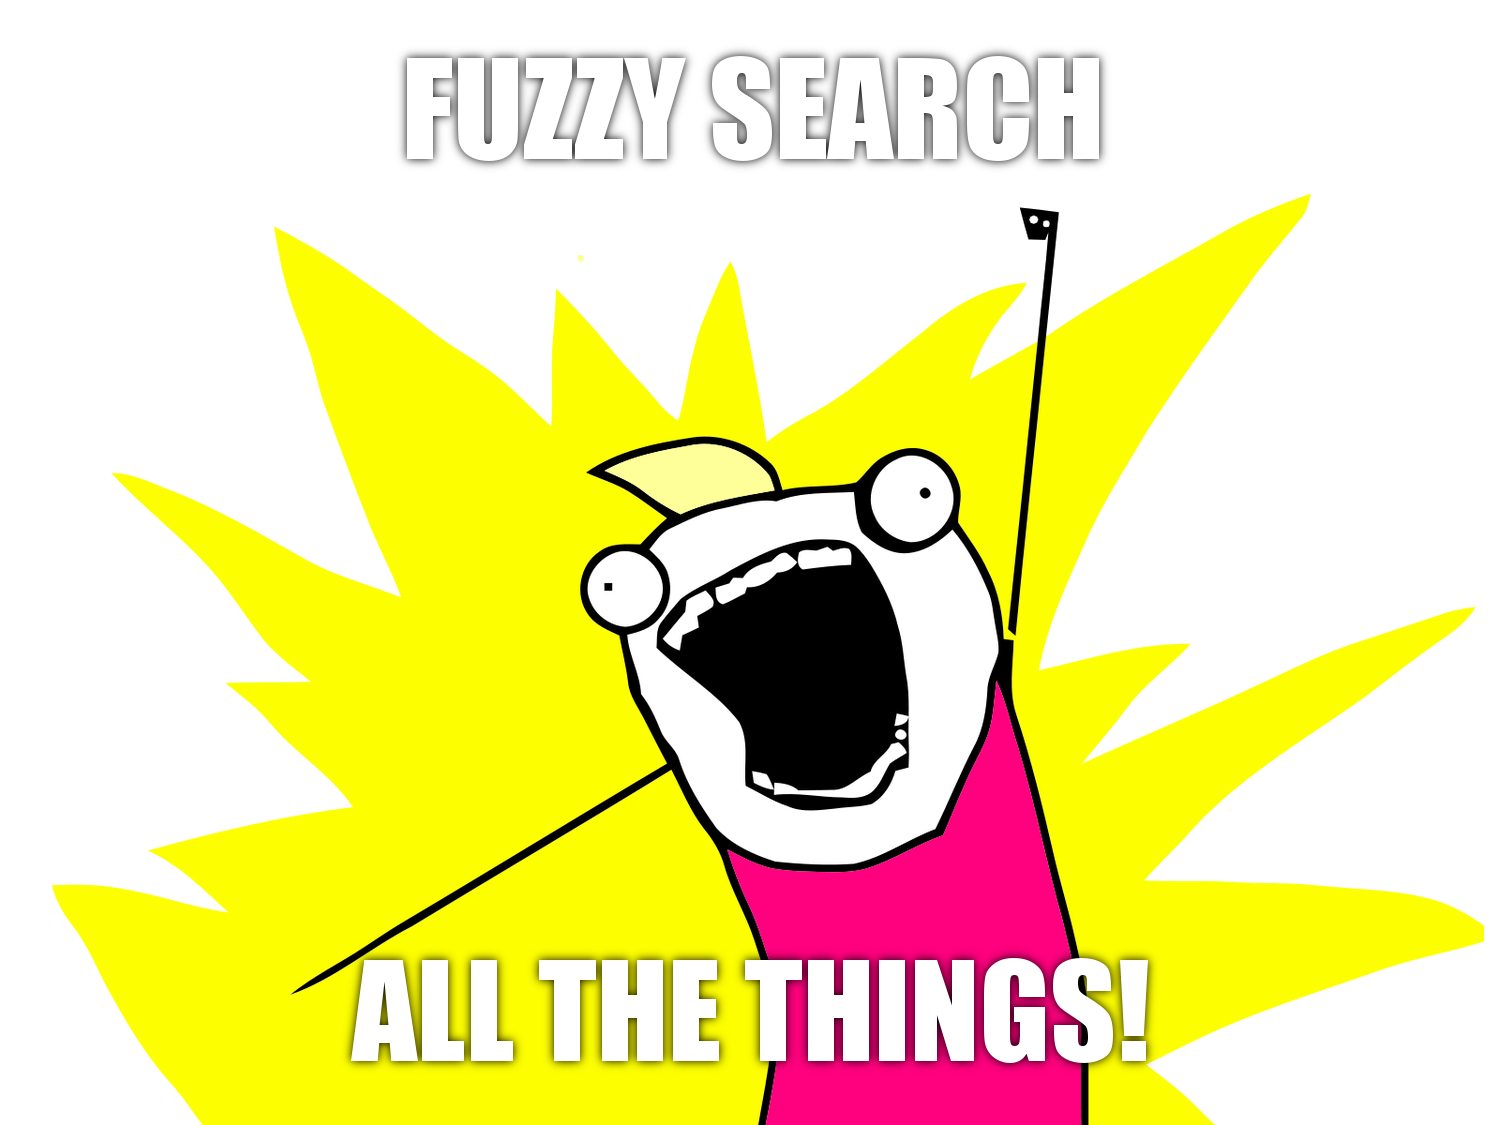 fuzzy-search-all-the-things